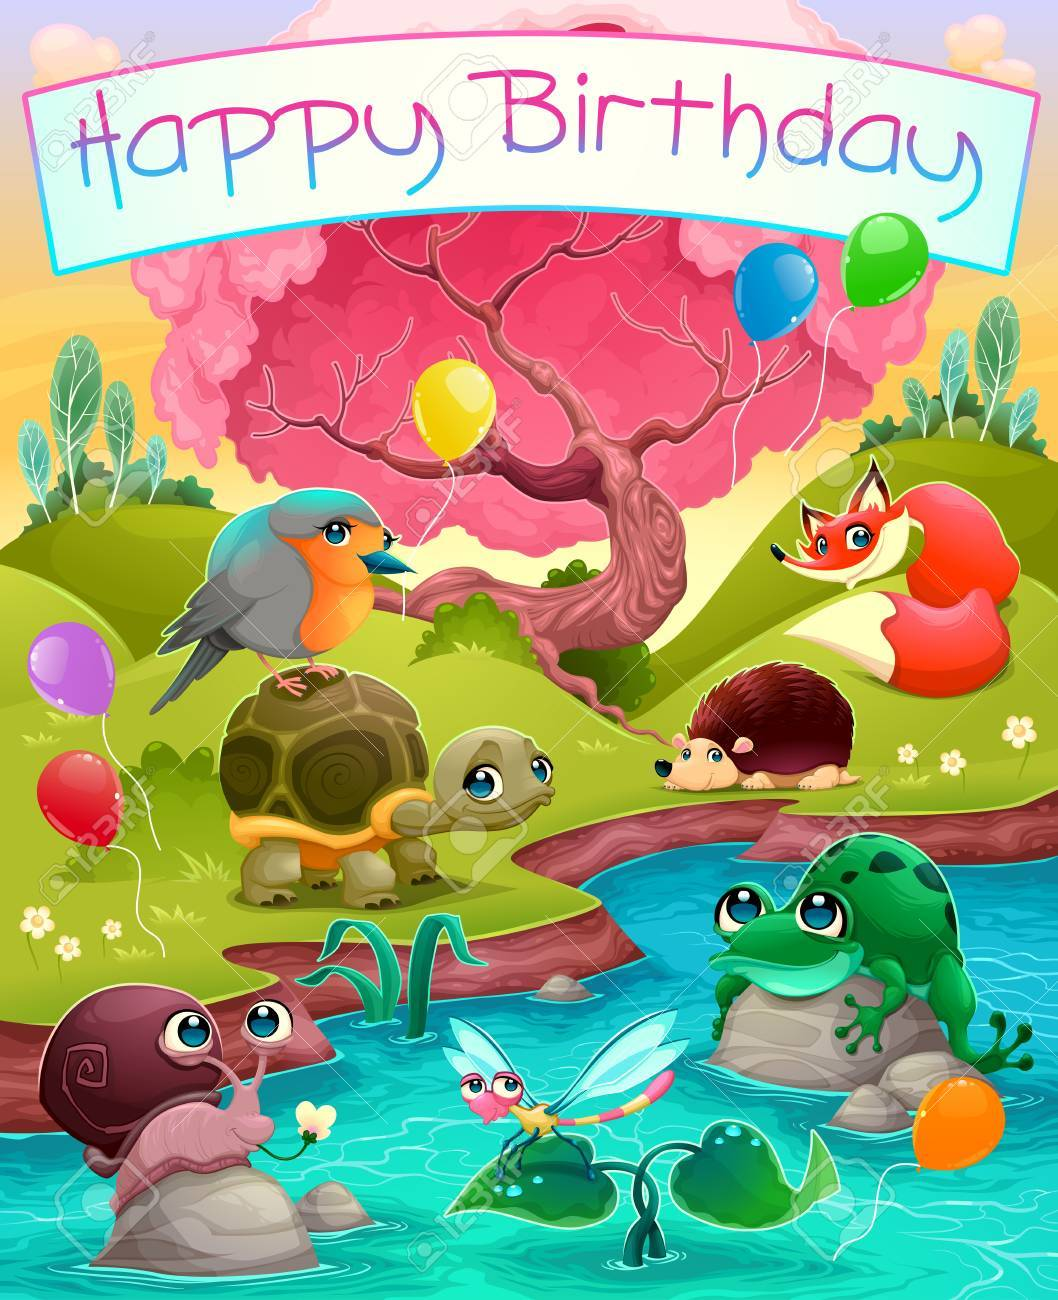 Happy Birthday card with cute animals in the countryside. Vector cartoon illustration - 70767148